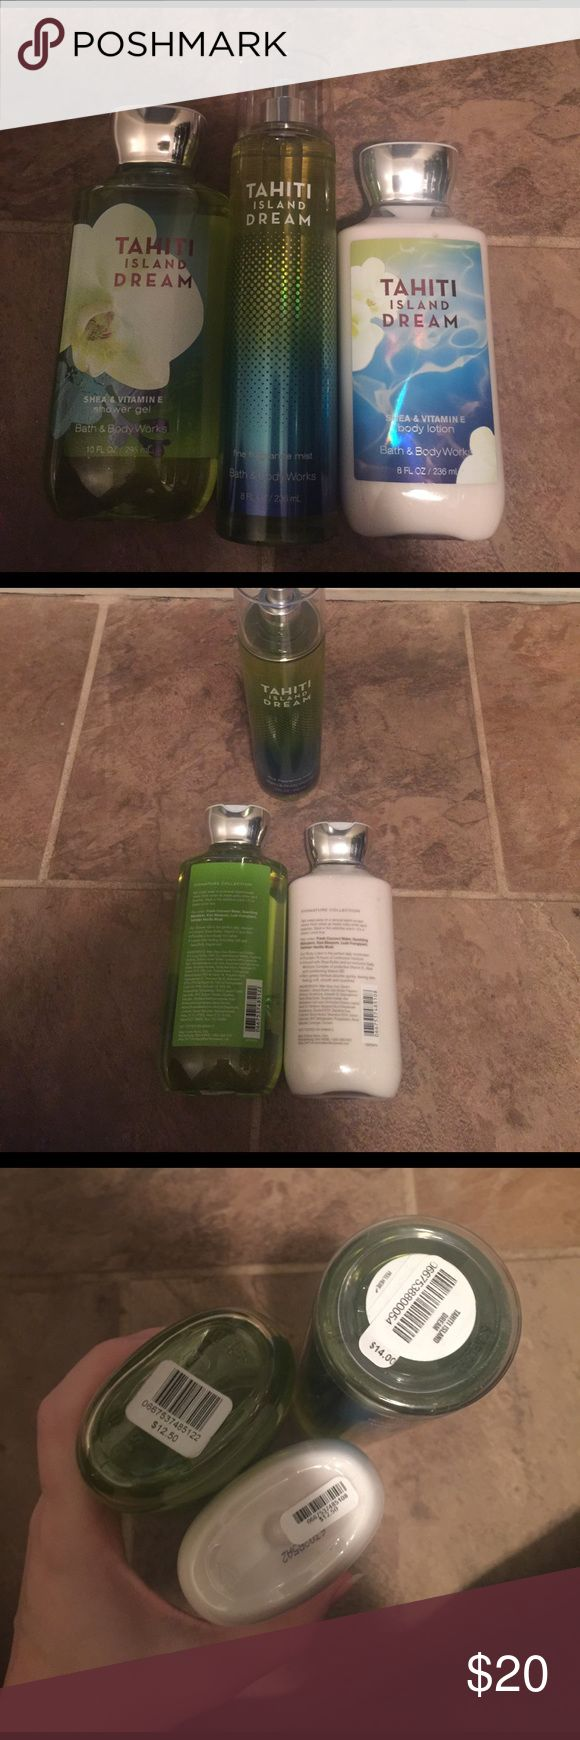 Bath & Body works Tahiti Island Dream set Includes full size, shower gel, lotion and body spray! All brand new never used. Tahiti Island Dream bath and body works  Accessories